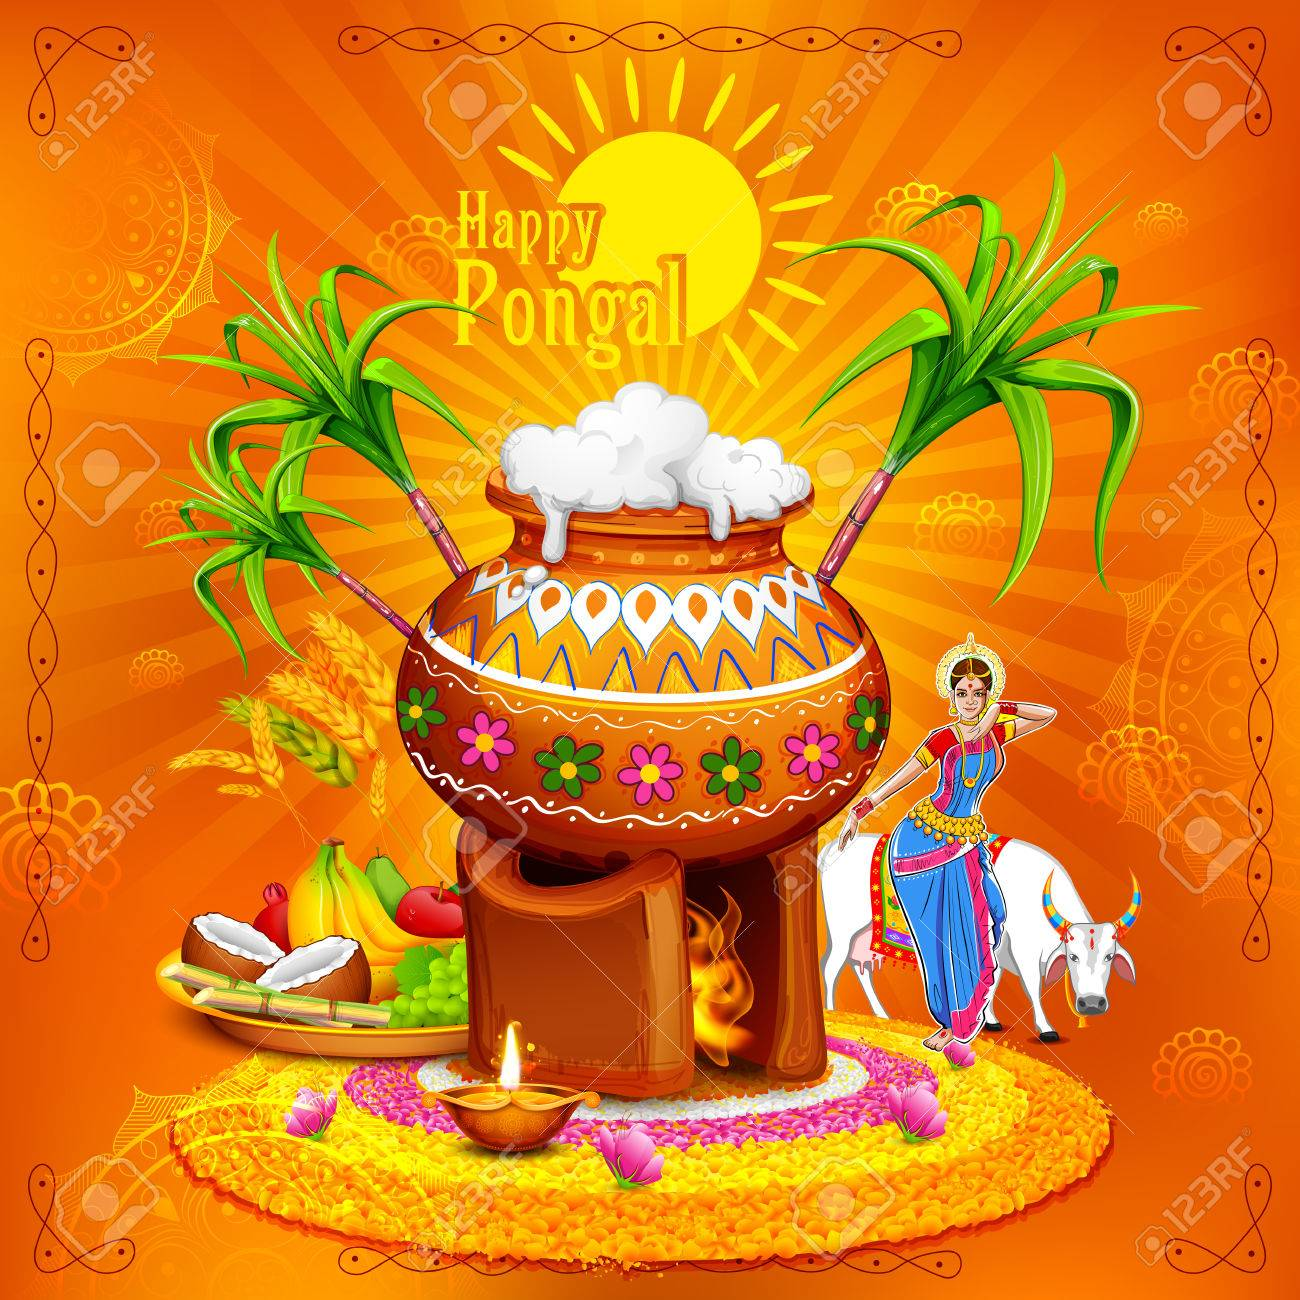 Illustration of happy pongal greeting background royalty free illustration of happy pongal greeting background stock vector 68056891 m4hsunfo